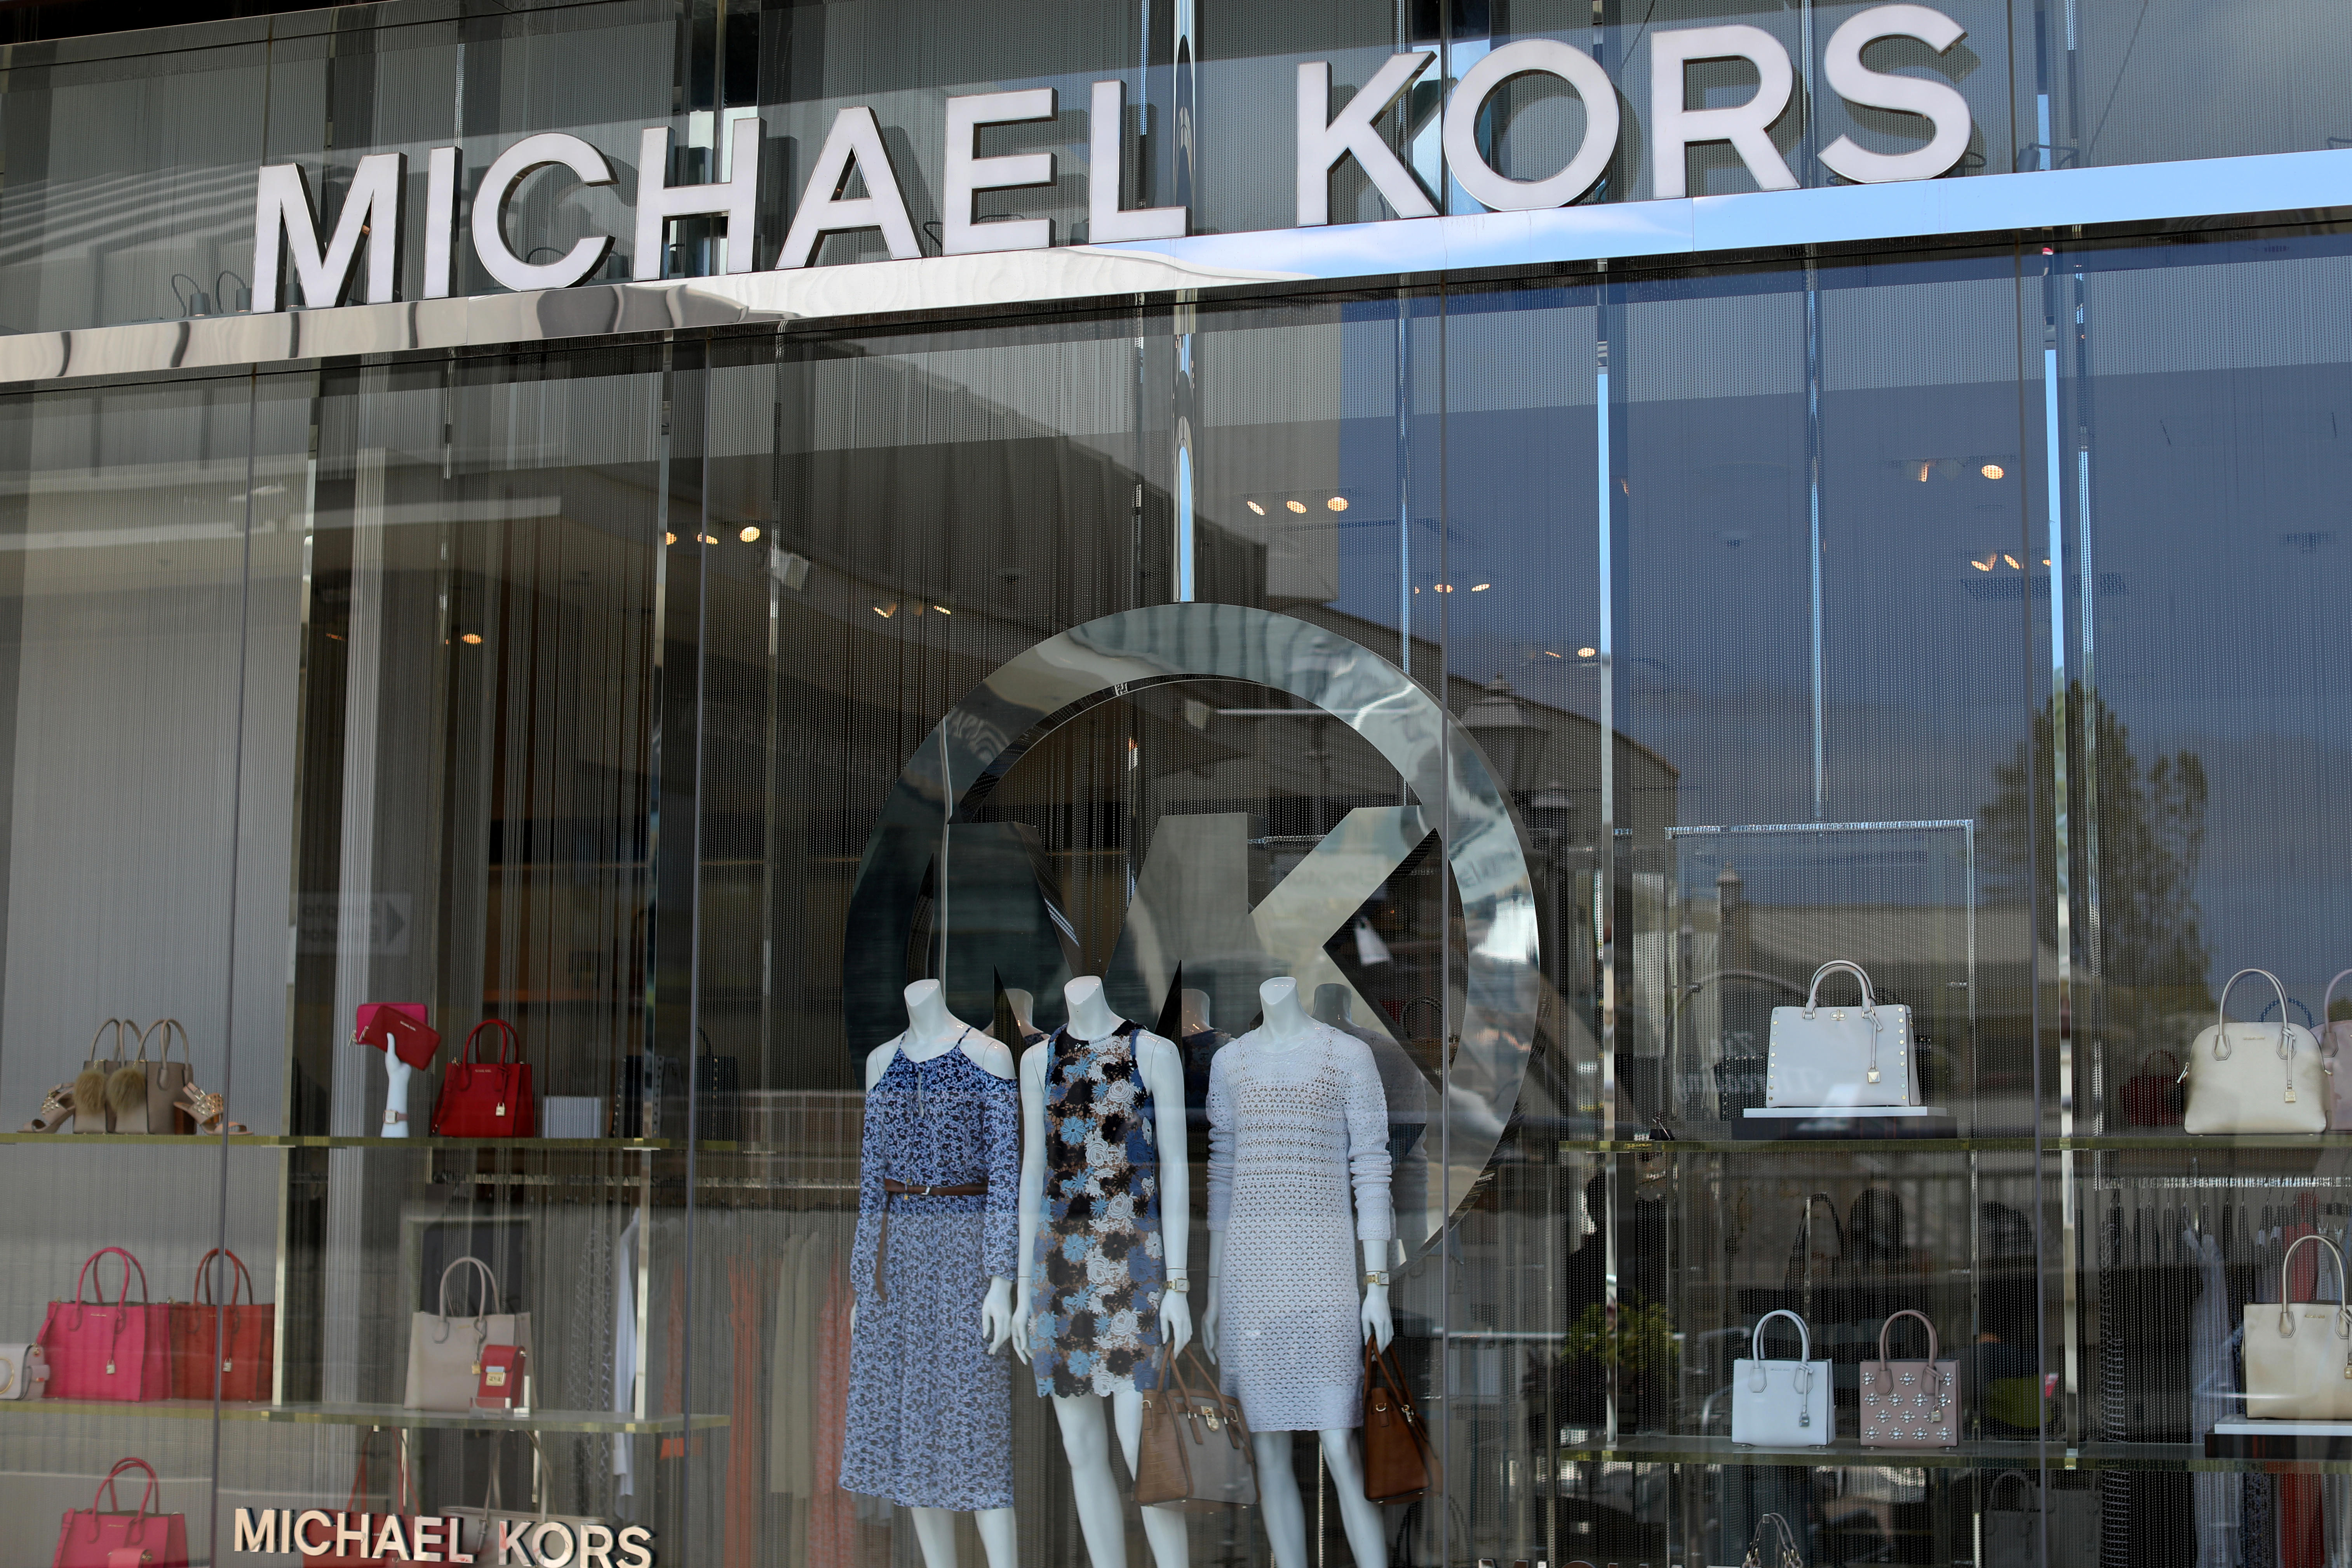 52a5cbb4f3b9 Michael Kors buying Versace fashion house for  2 billion - CBS News